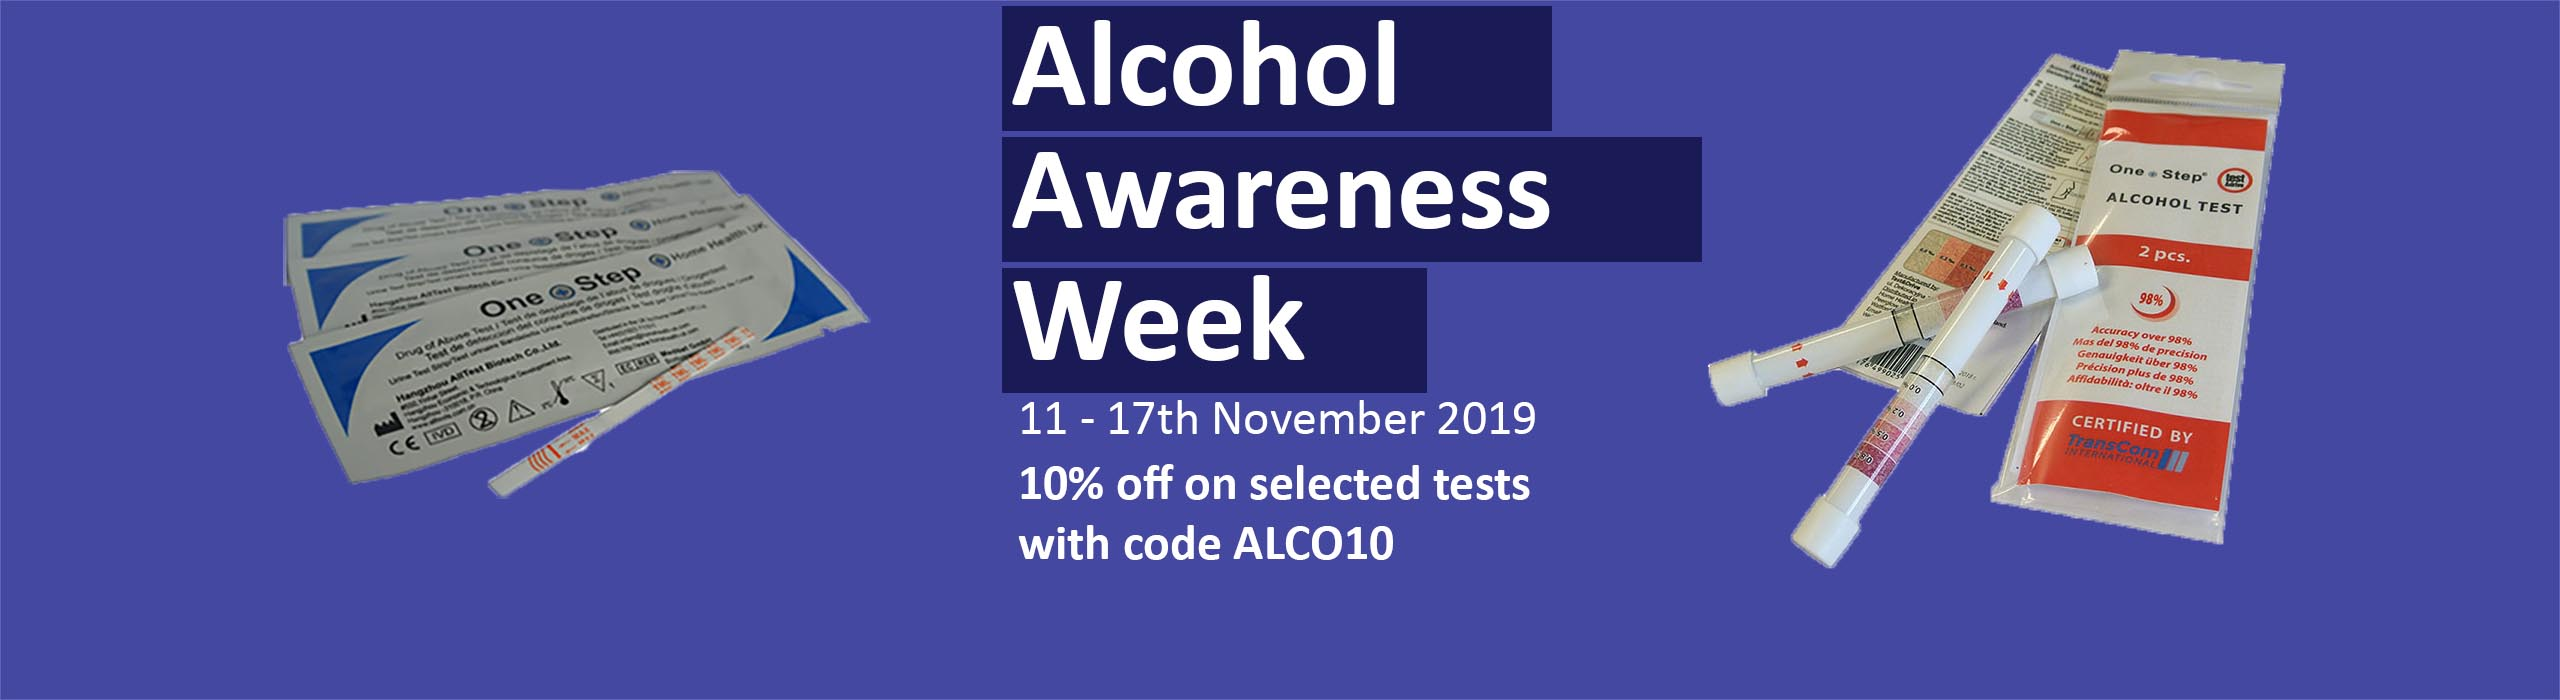 alcohol awareness week